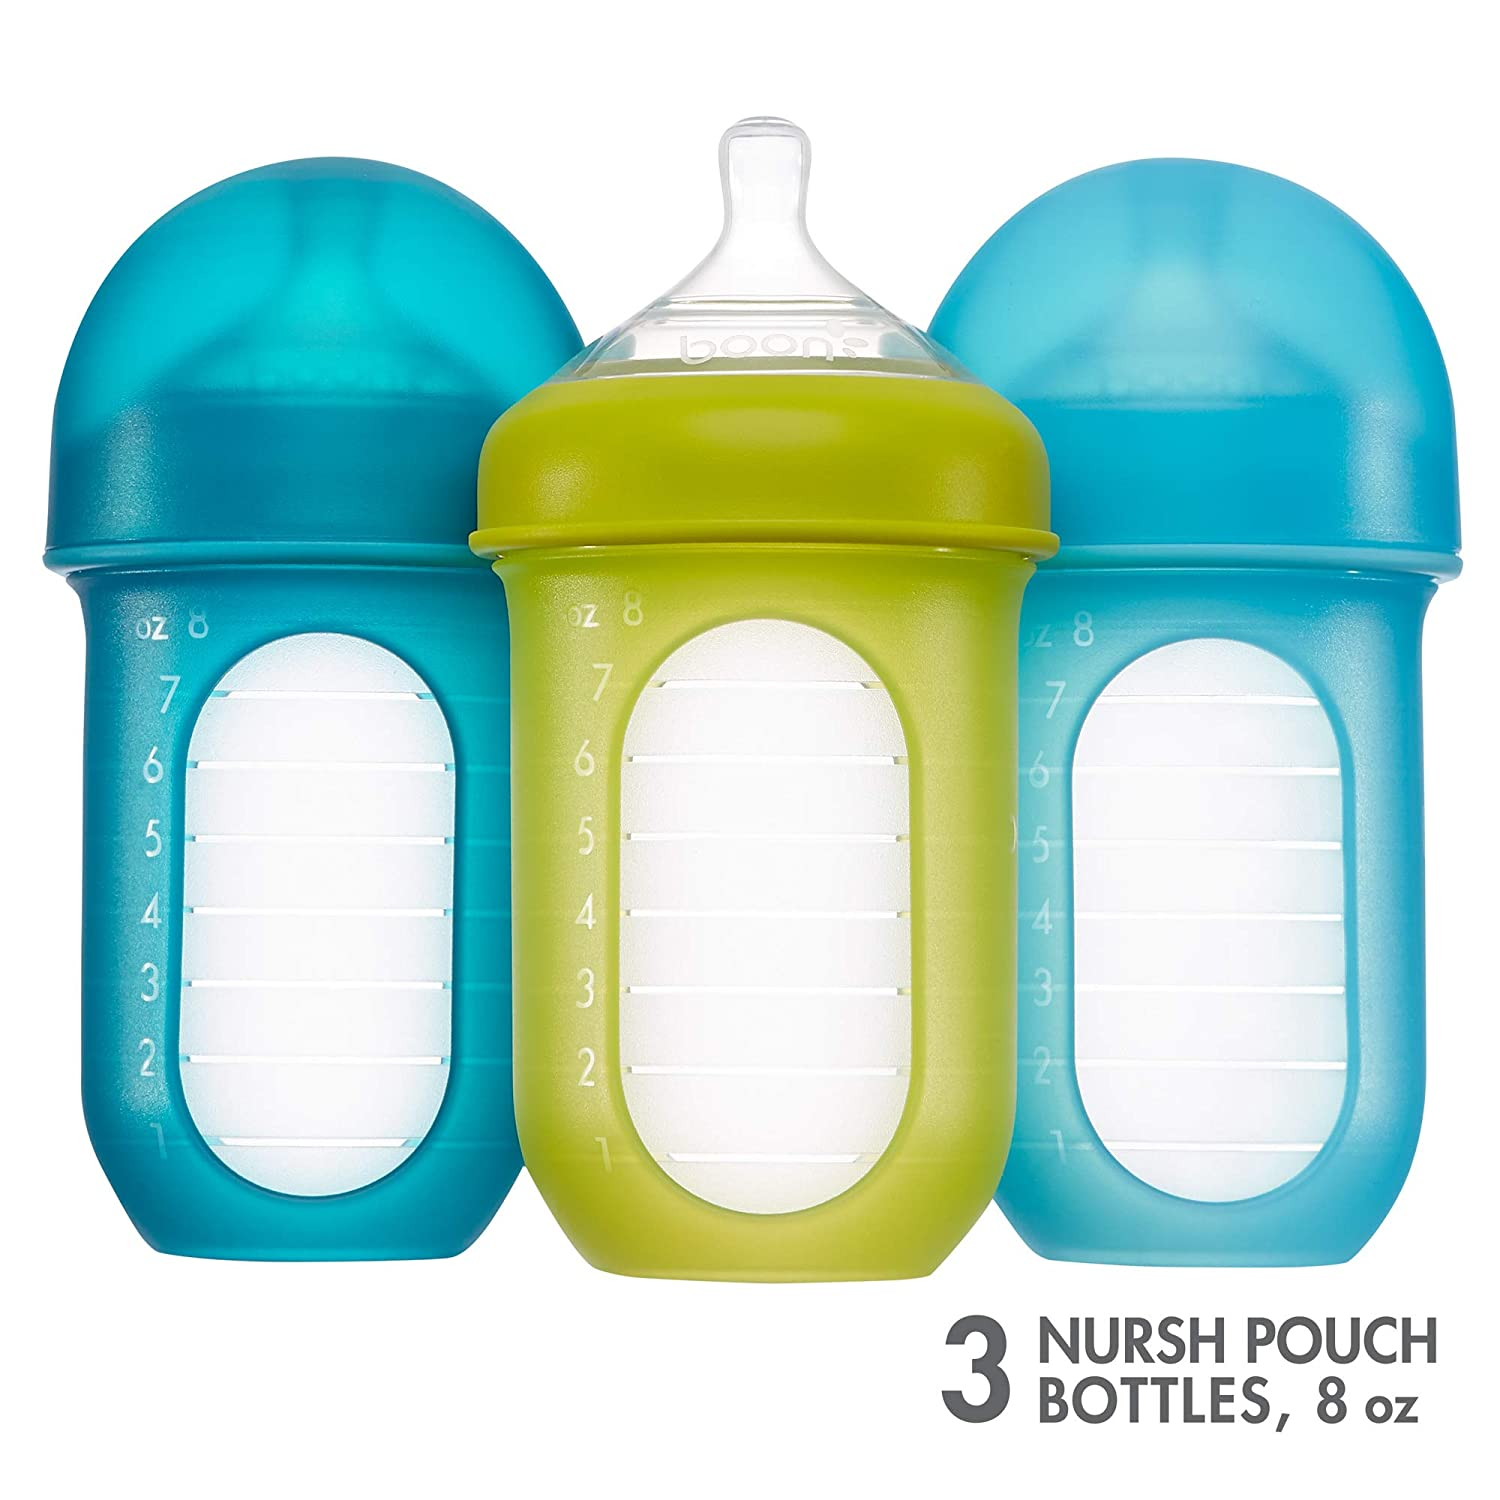 4 Ounce with Stage 1 Slow Flow Nipple Boon NURSH Reusable Silicone Pouch Bottle Air-Free Feeding Pack of 3